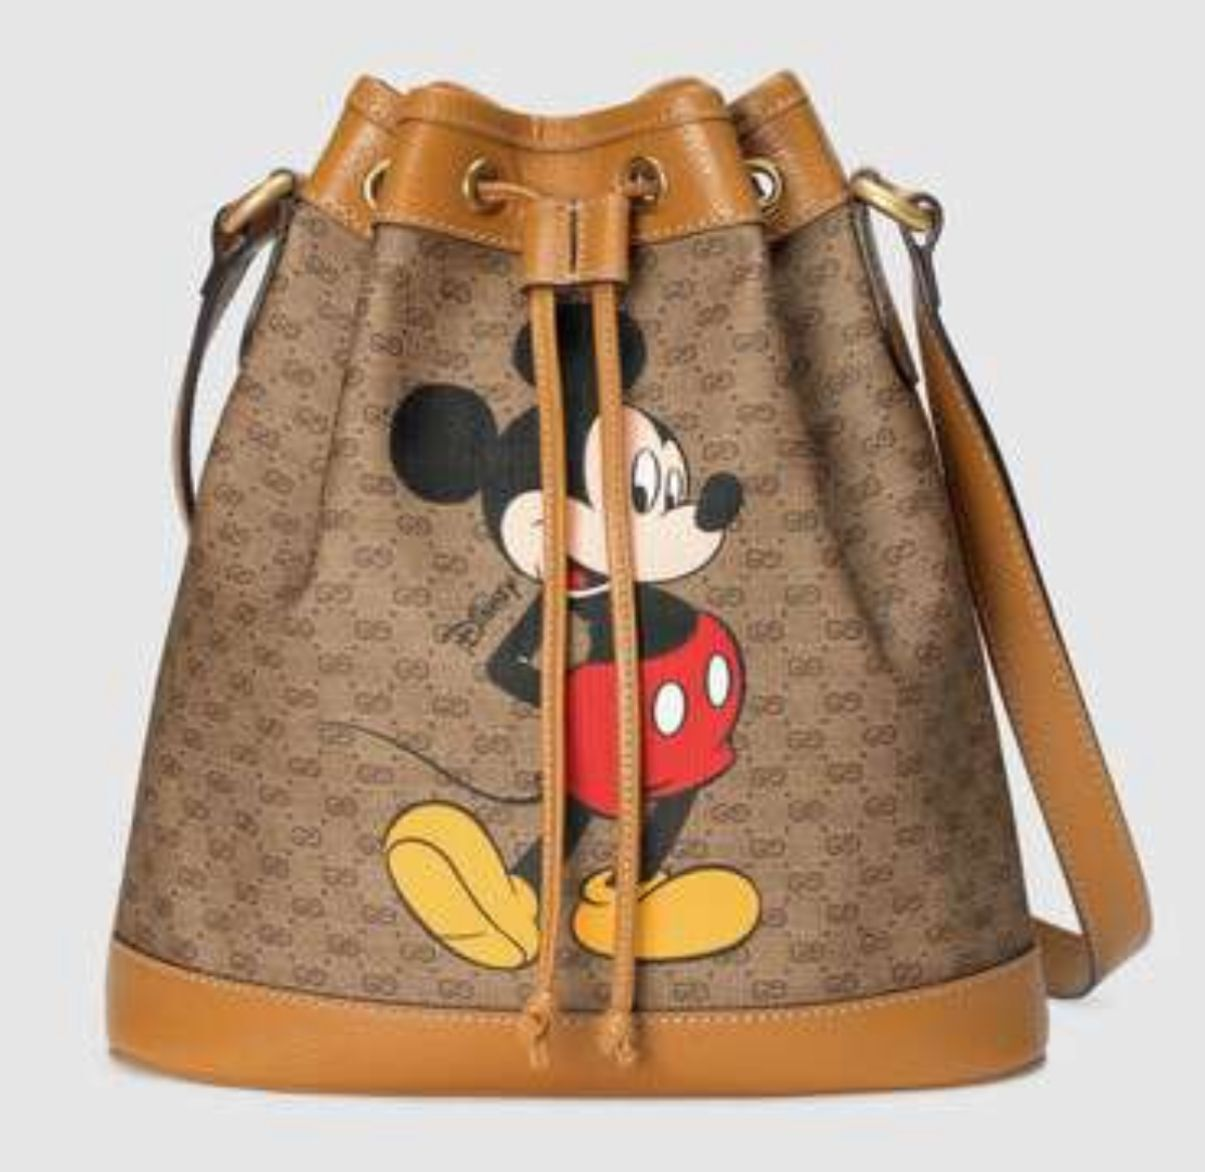 Gucci Disney x Mickey Mouse Small Bucket Bag 602691 Brown